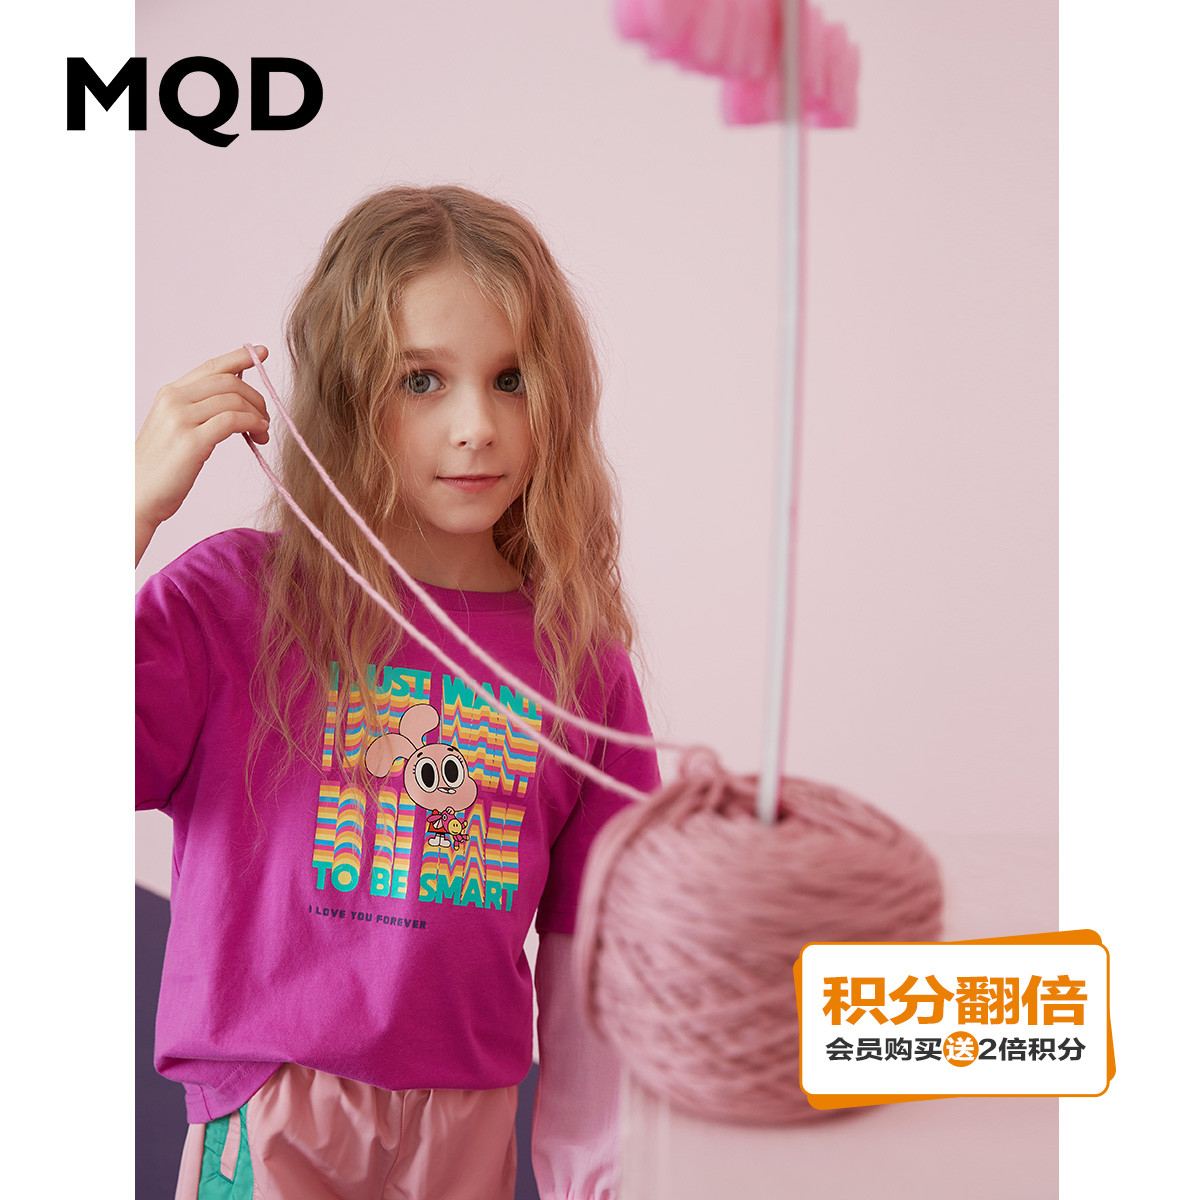 Mqd children's T-shirt 2020 spring new children's all-around fake two round neck off shoulder Korean style T-shirt